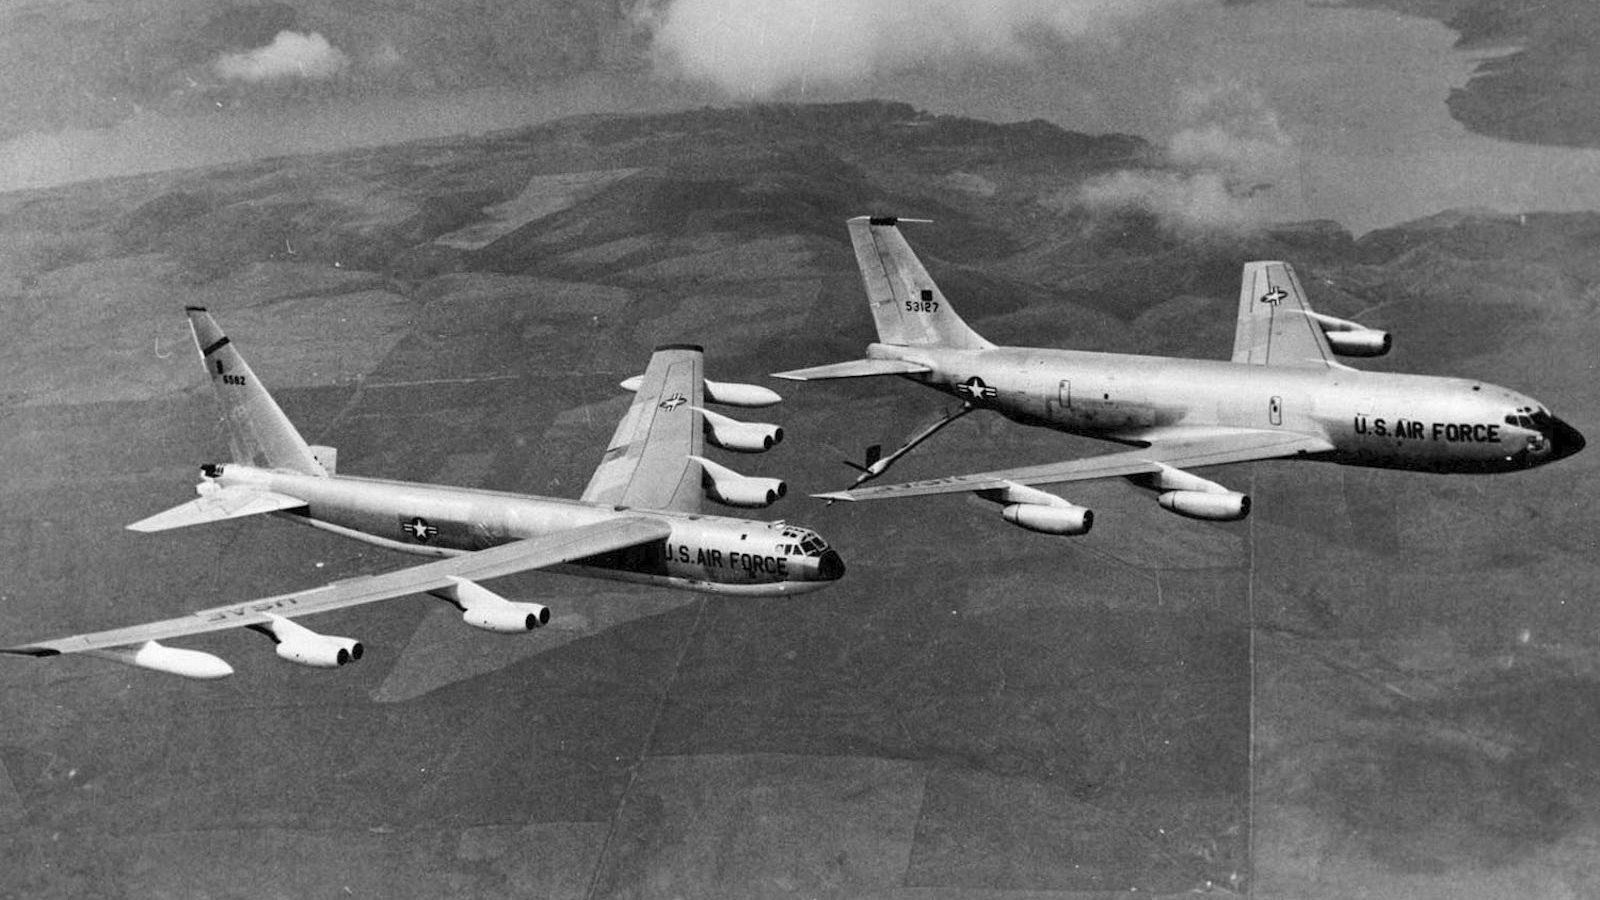 B-52 bomber being refueled by KC-135 tanker in 1965